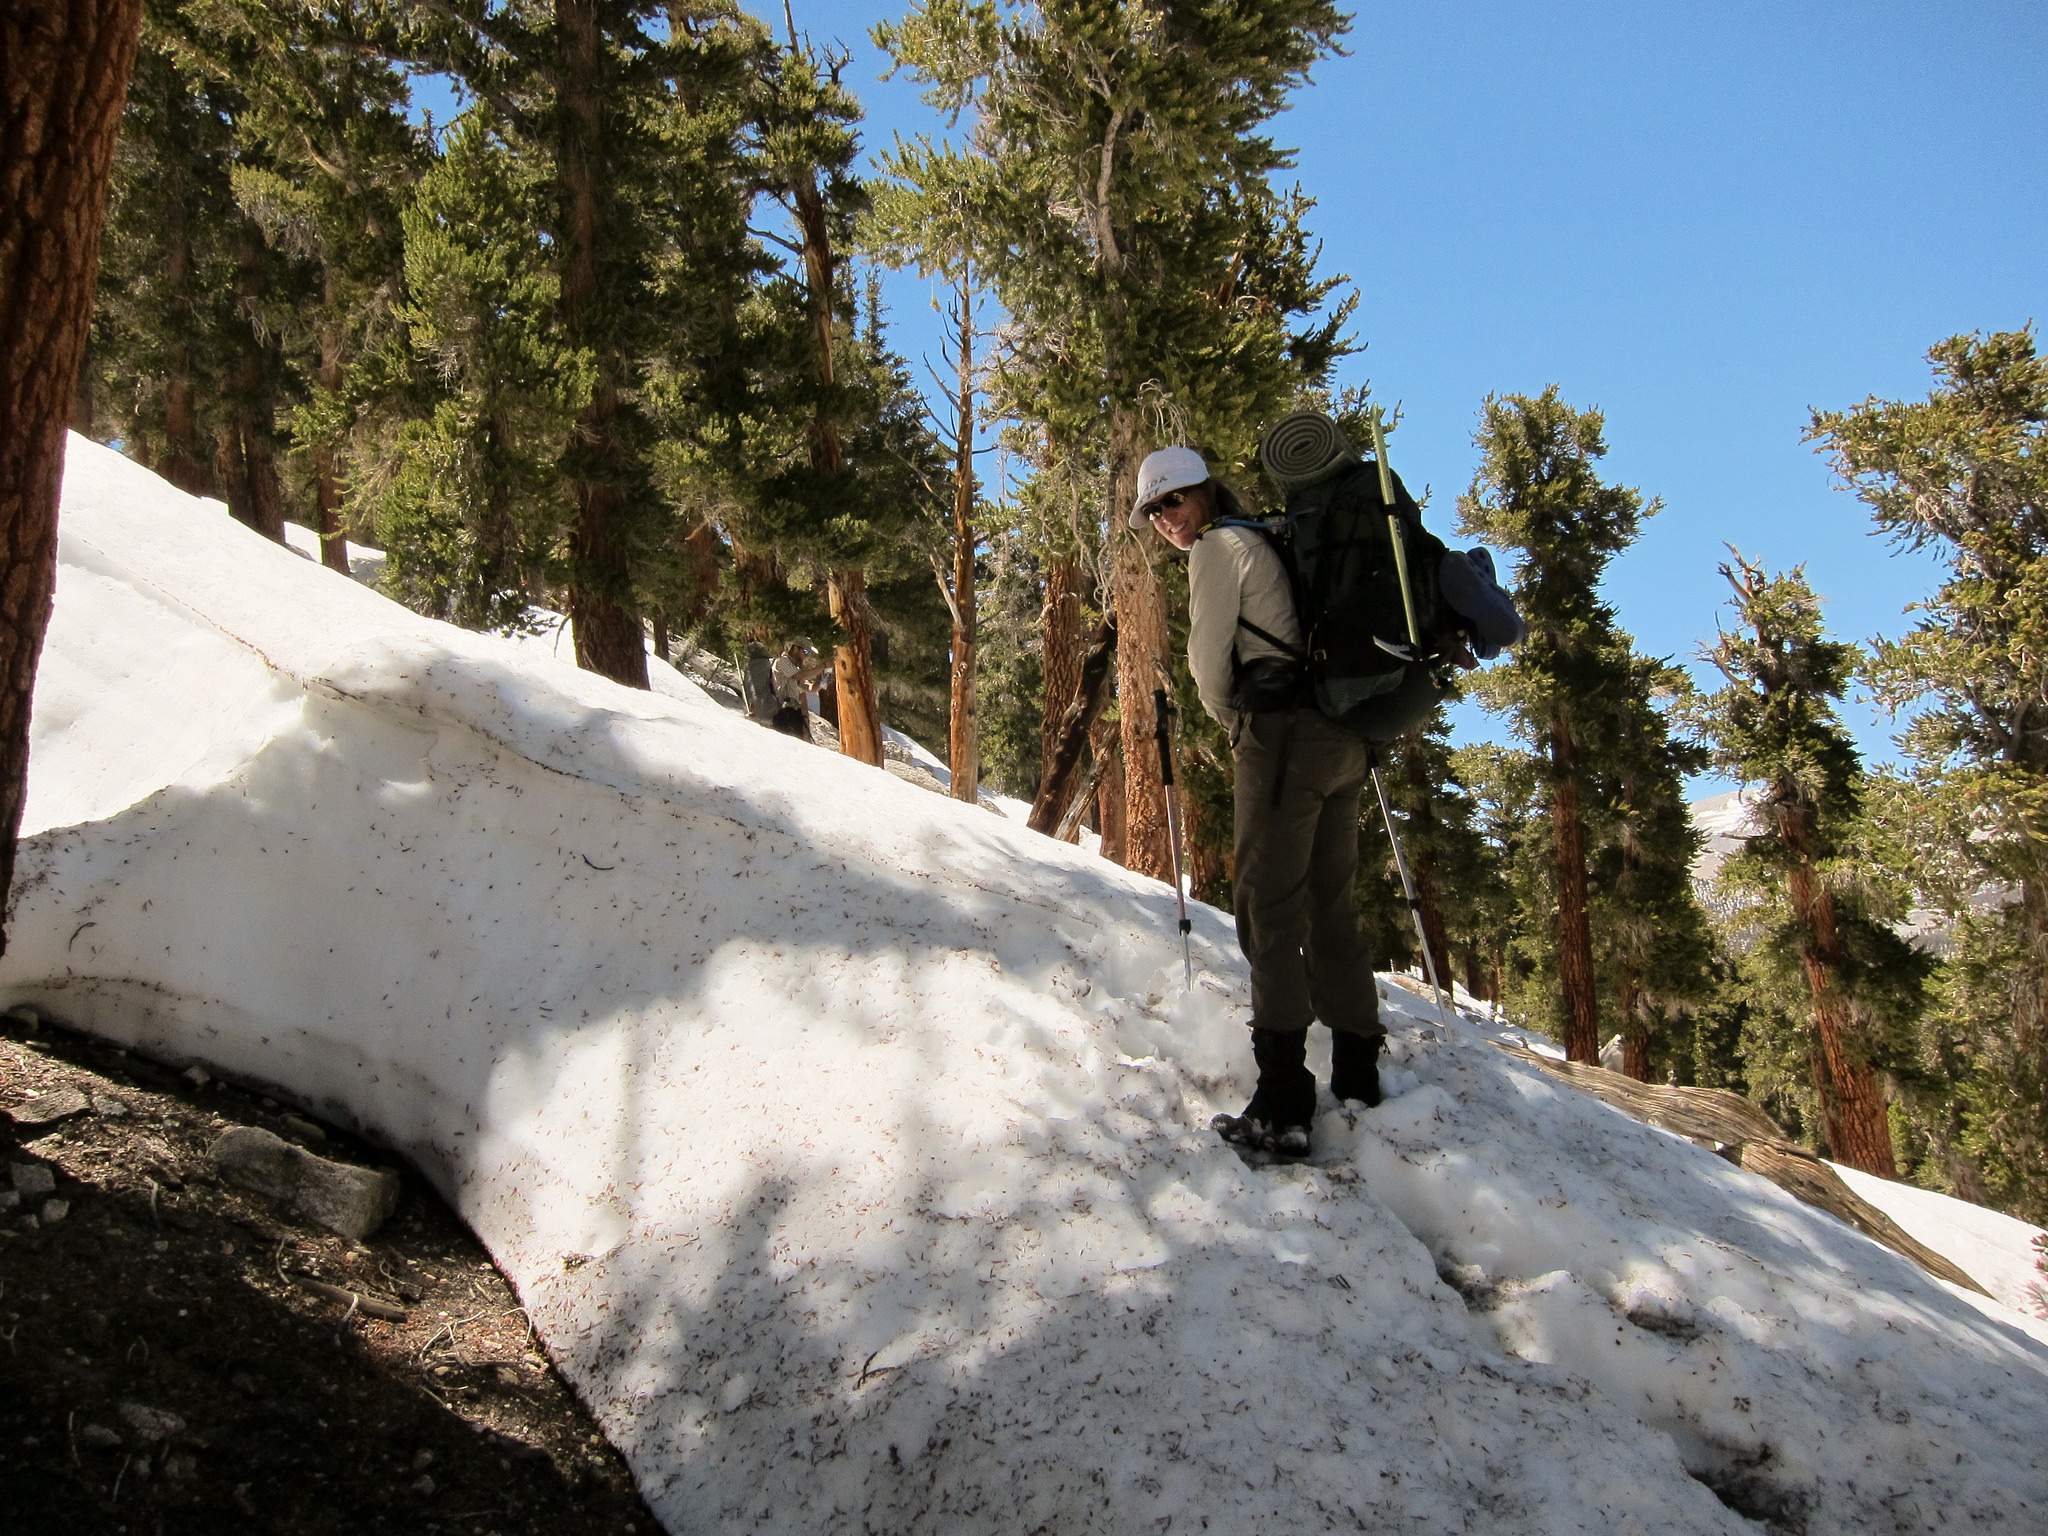 snow starts just after trail pass sierra